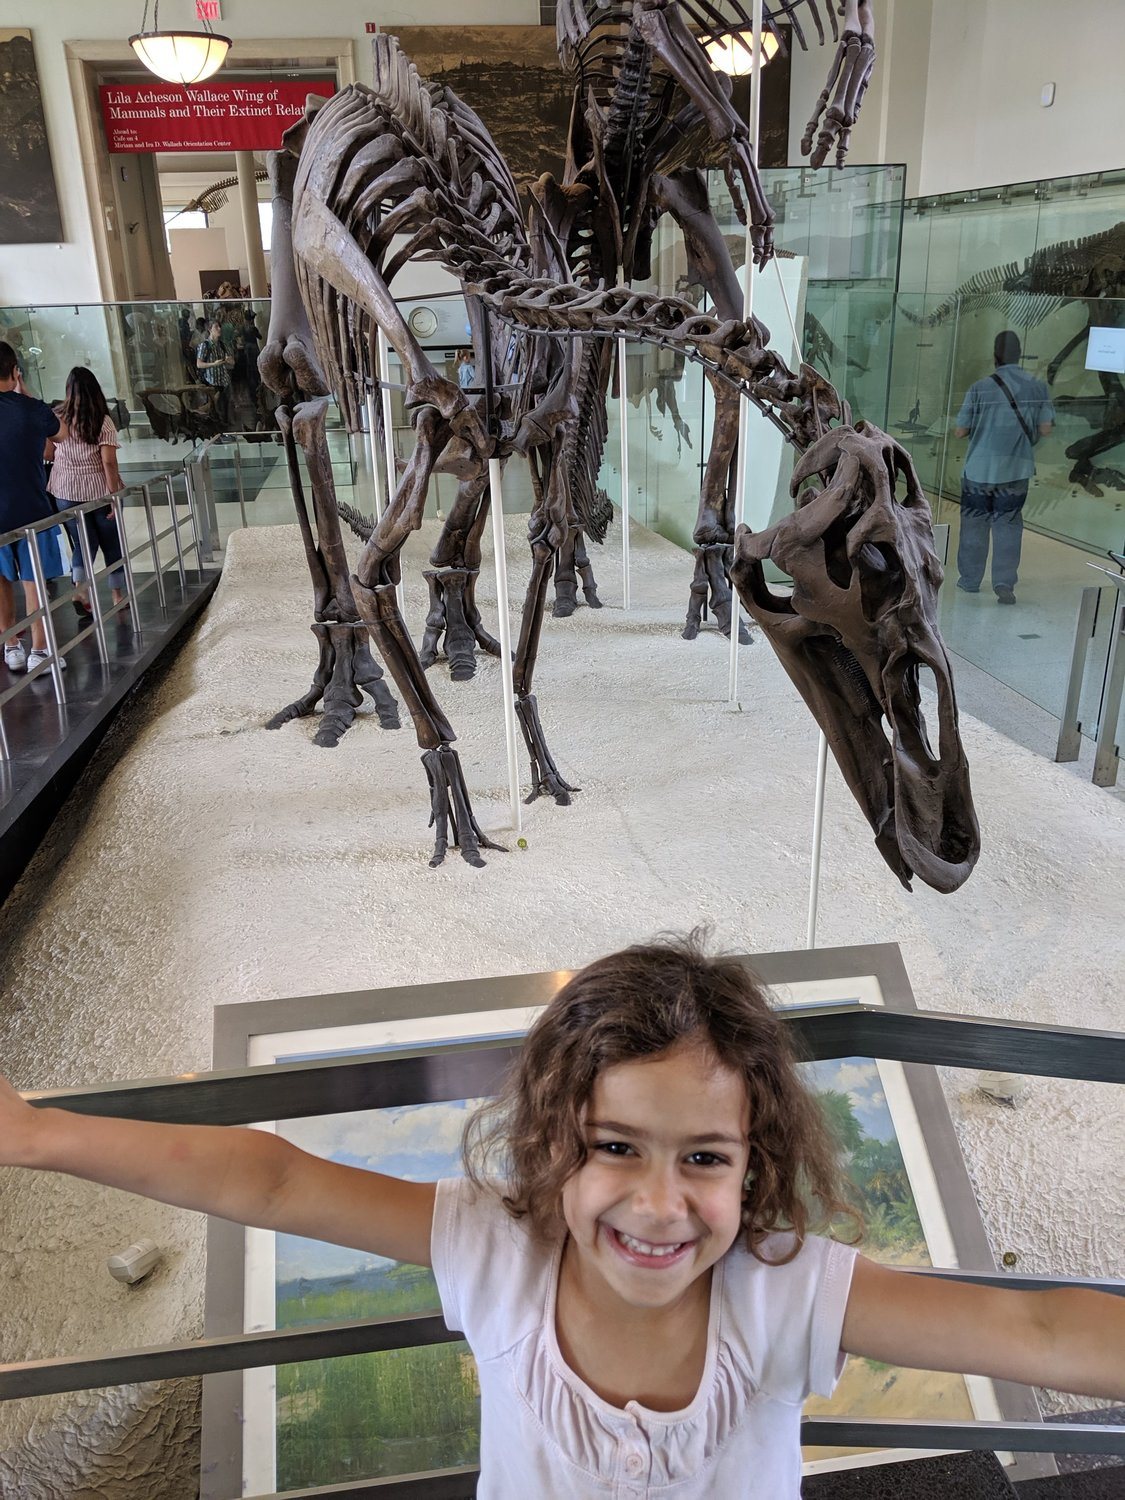 Sullivan County children attended a free trip to the American Museum of Natural History in New York City on July 6 thanks to Nana's House Child Care Center in Rock Hill.